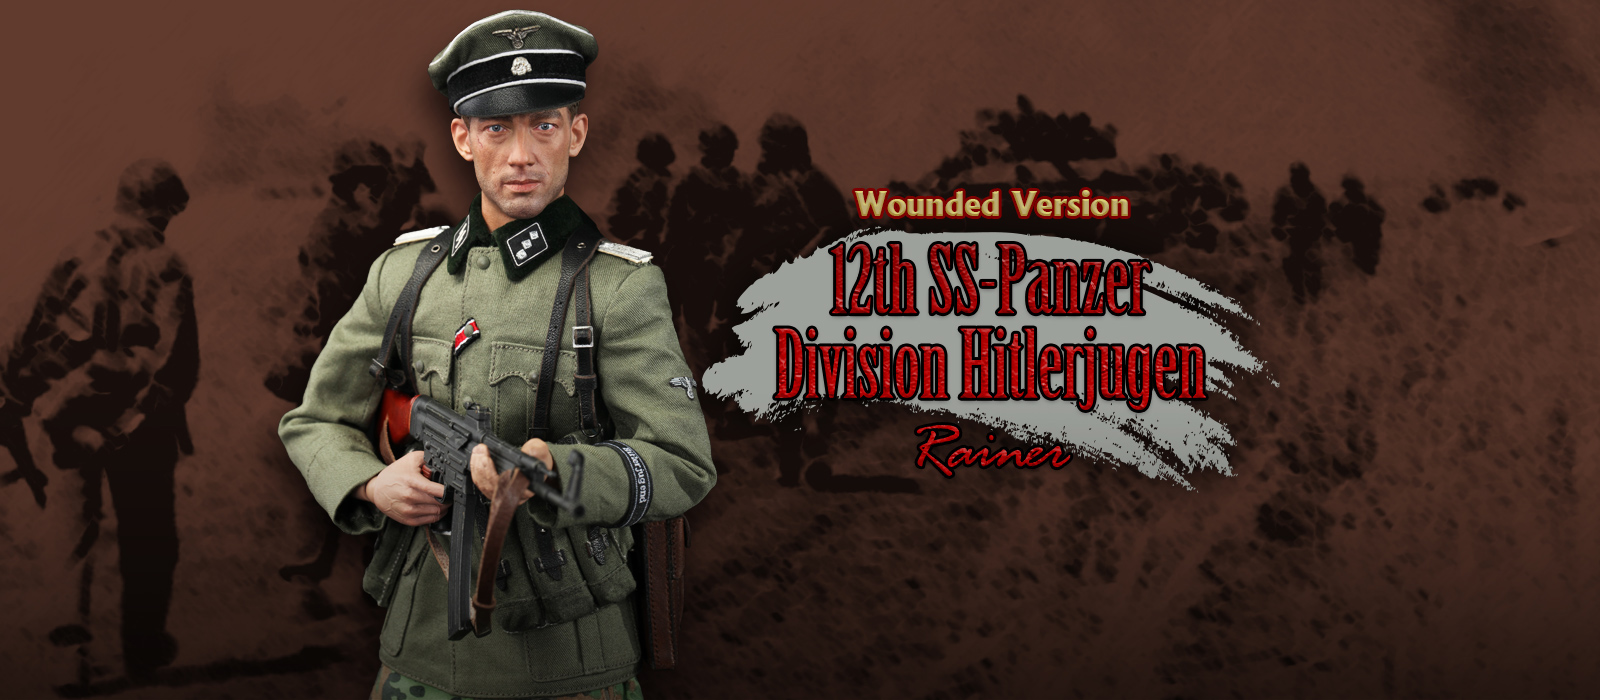 D80118S 12th SS Panzer Division Hitlerjugen Rainer Wounded Version